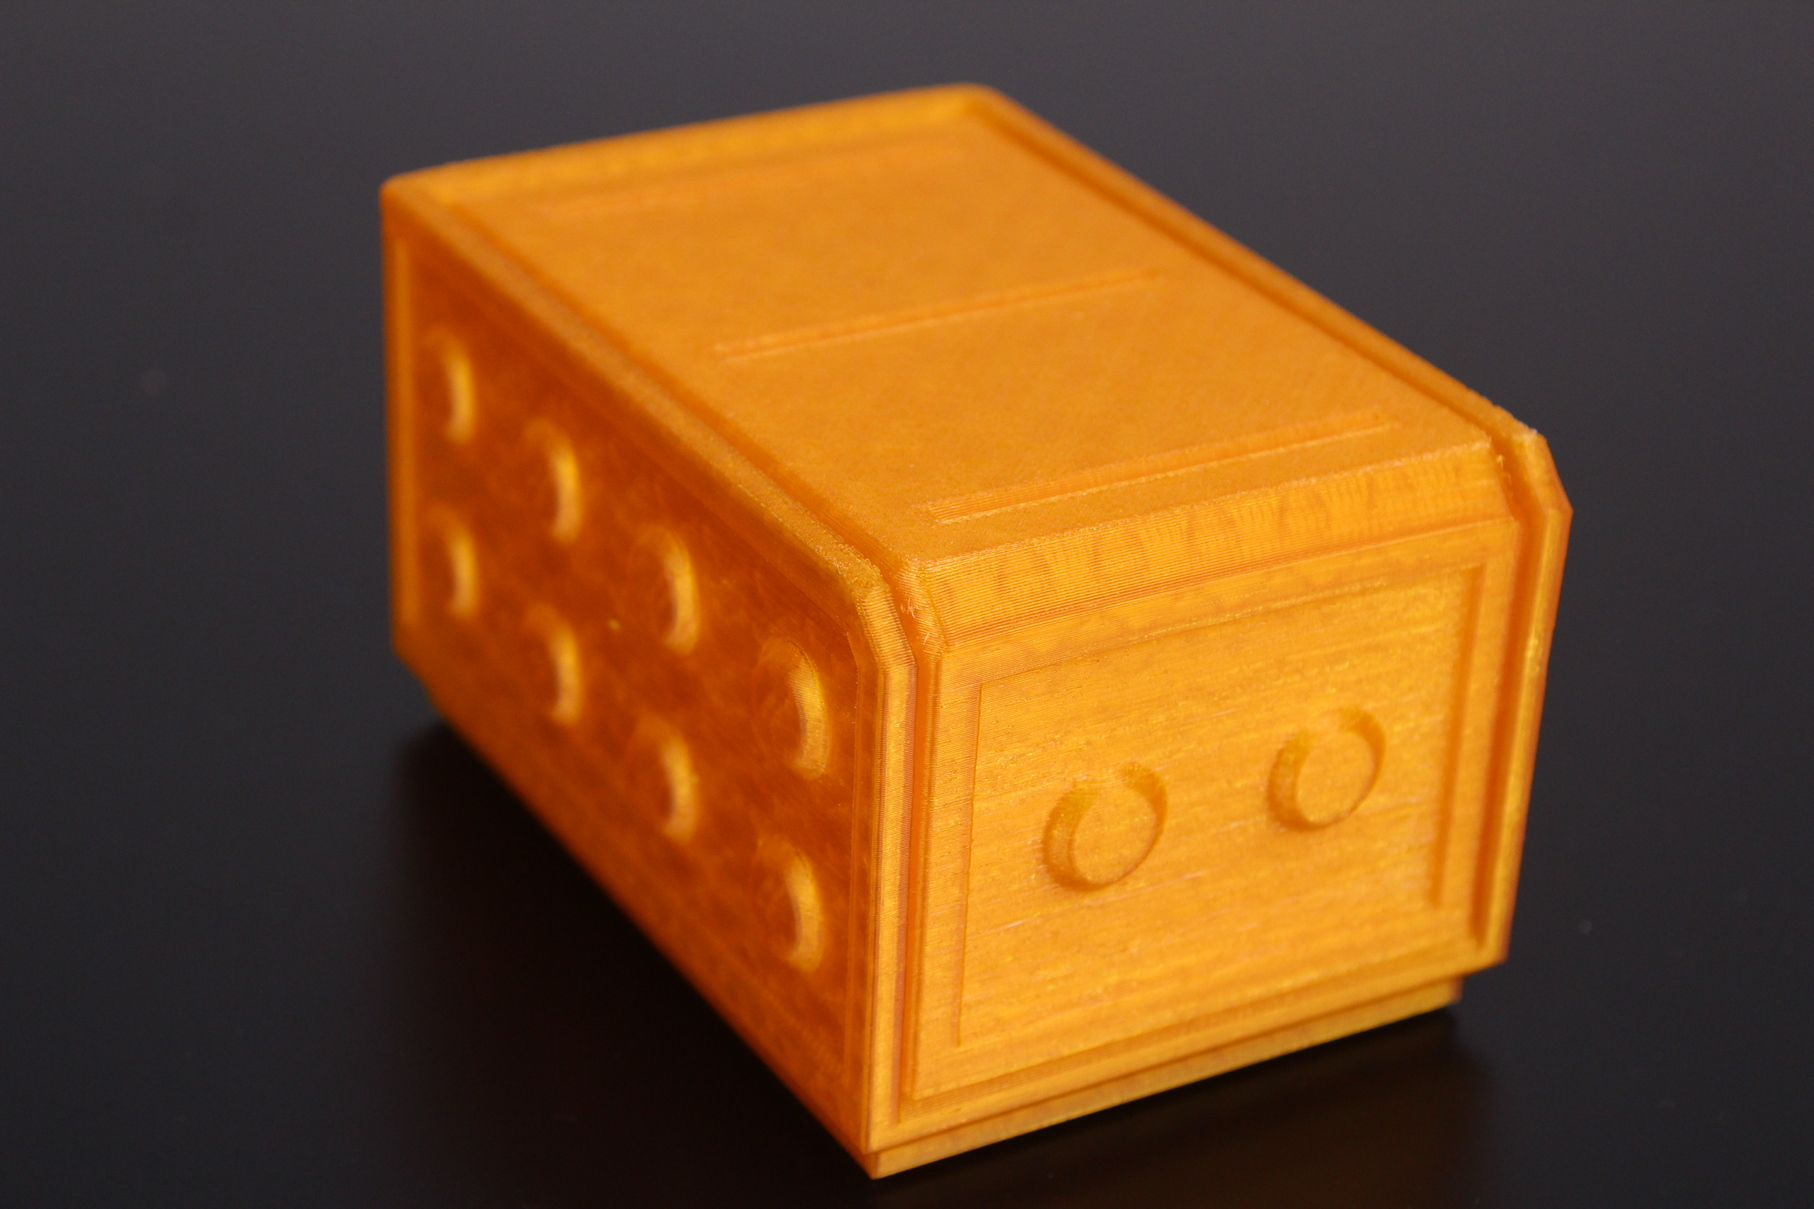 24-AA-Battery-Crate-printed-in-PETG-with-Fysetc-Prusa-Mini-Clone-4